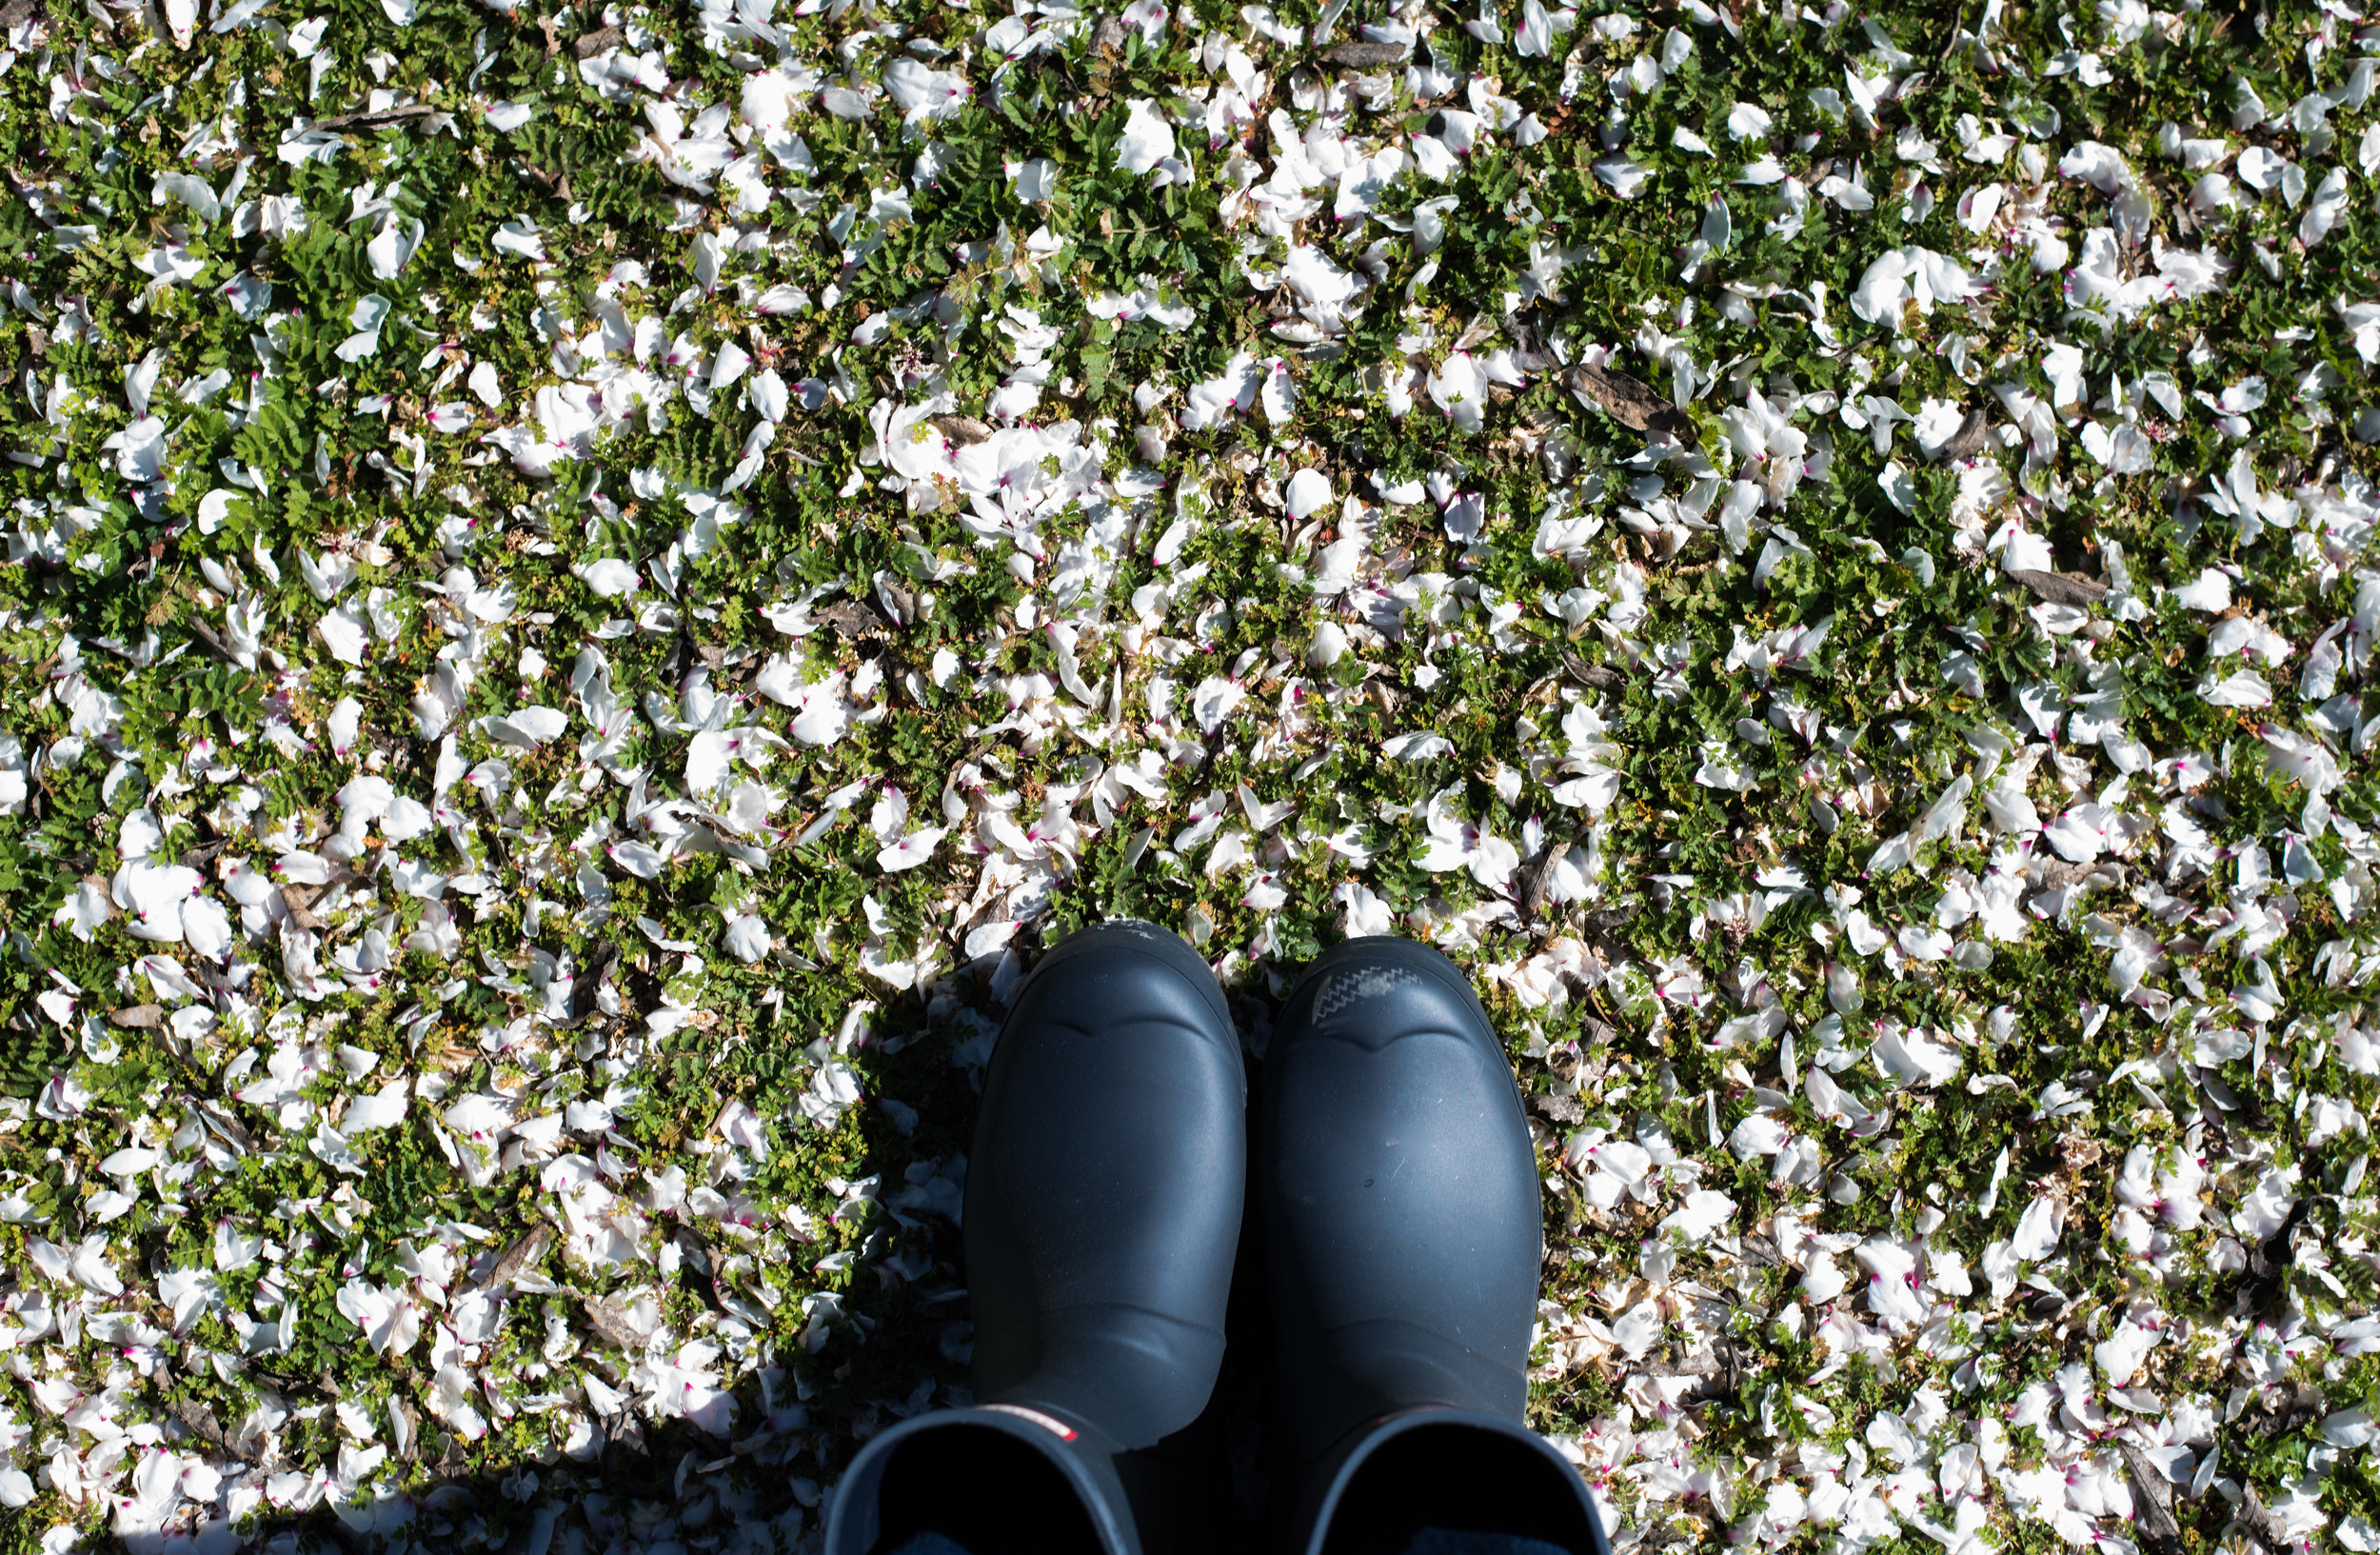 Boots in an almond grove